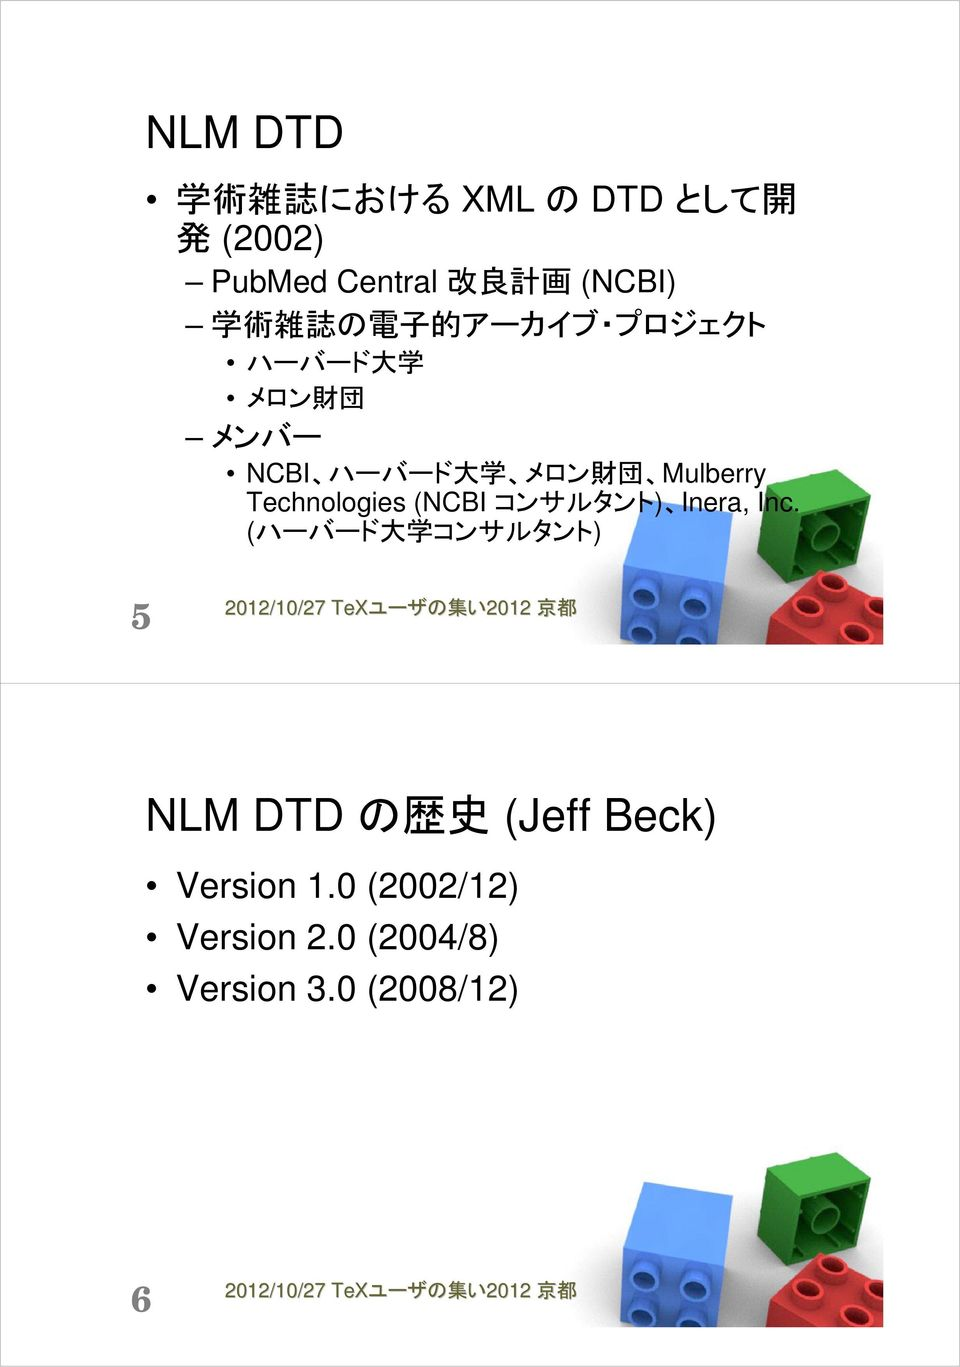 Mulberry Technologies (NCBI コンサルタント) Inera, Inc.